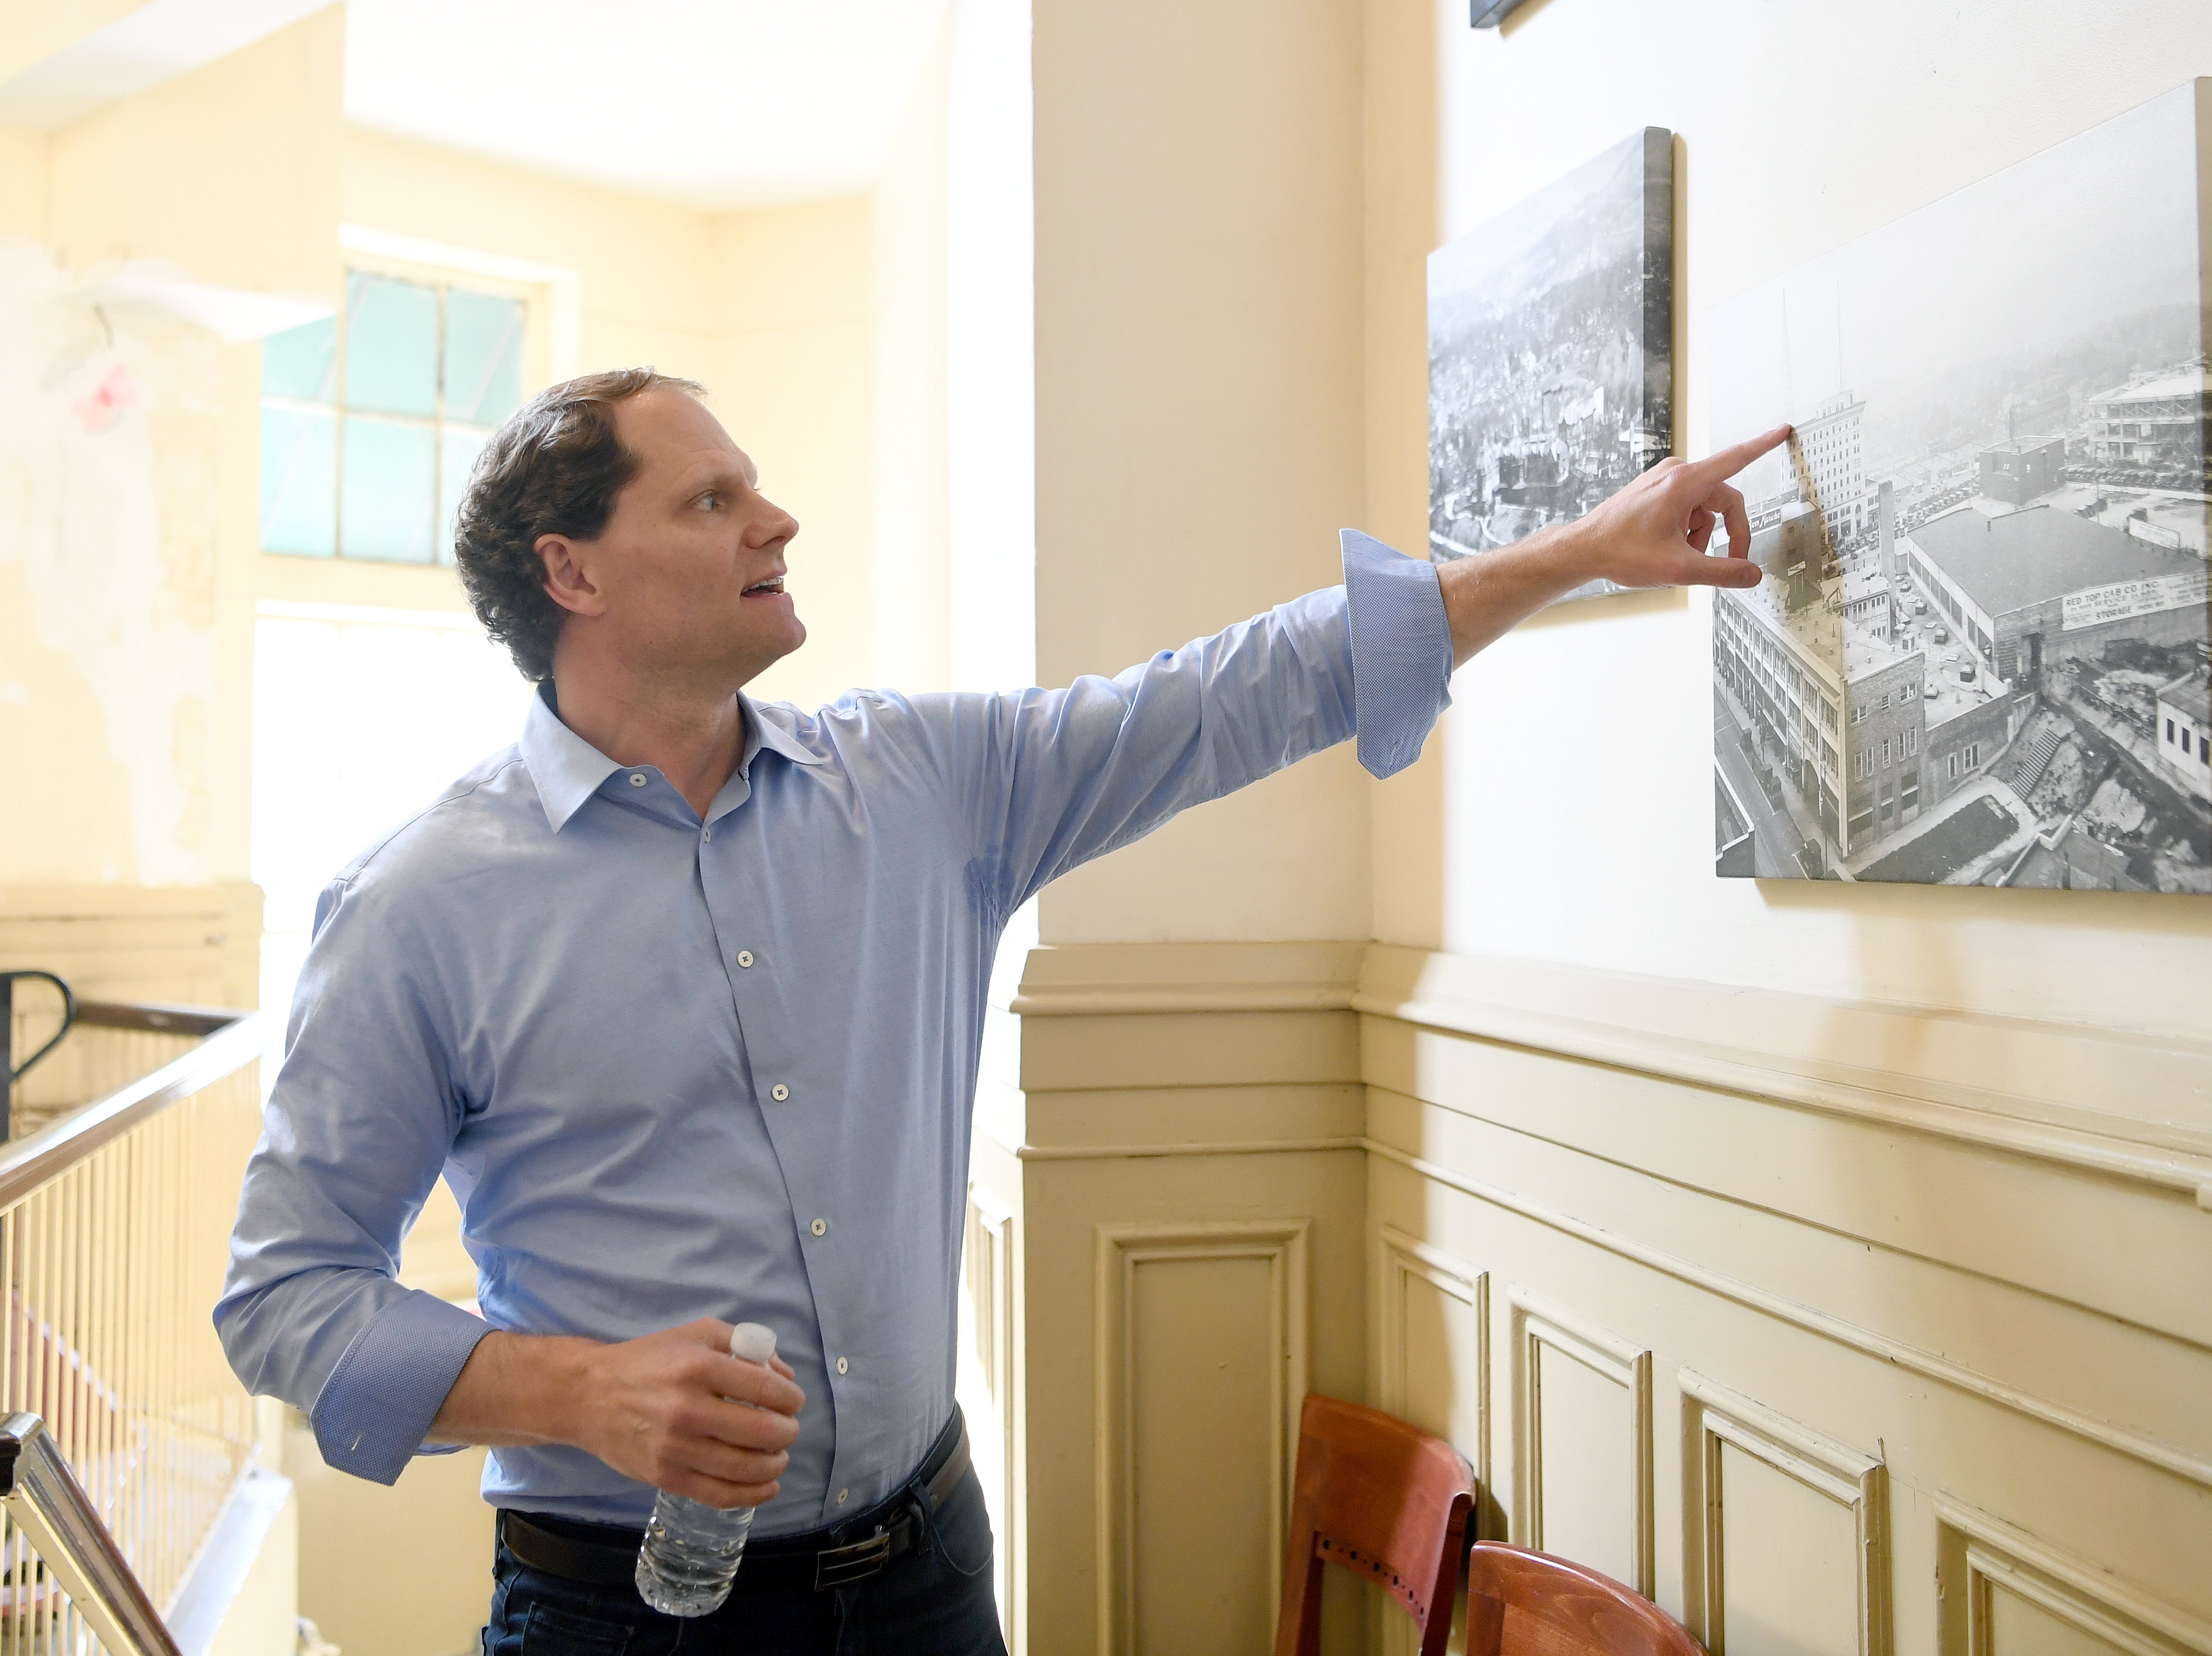 Developer Philip Woollcott, of the Flatiron Preservation Group, points out old features of the Flatiron Building in an historic photograph during a tour on May 3, 2019. Woollcott is waiting final approval to preserve the building and turn it into an 80-room boutique hotel.